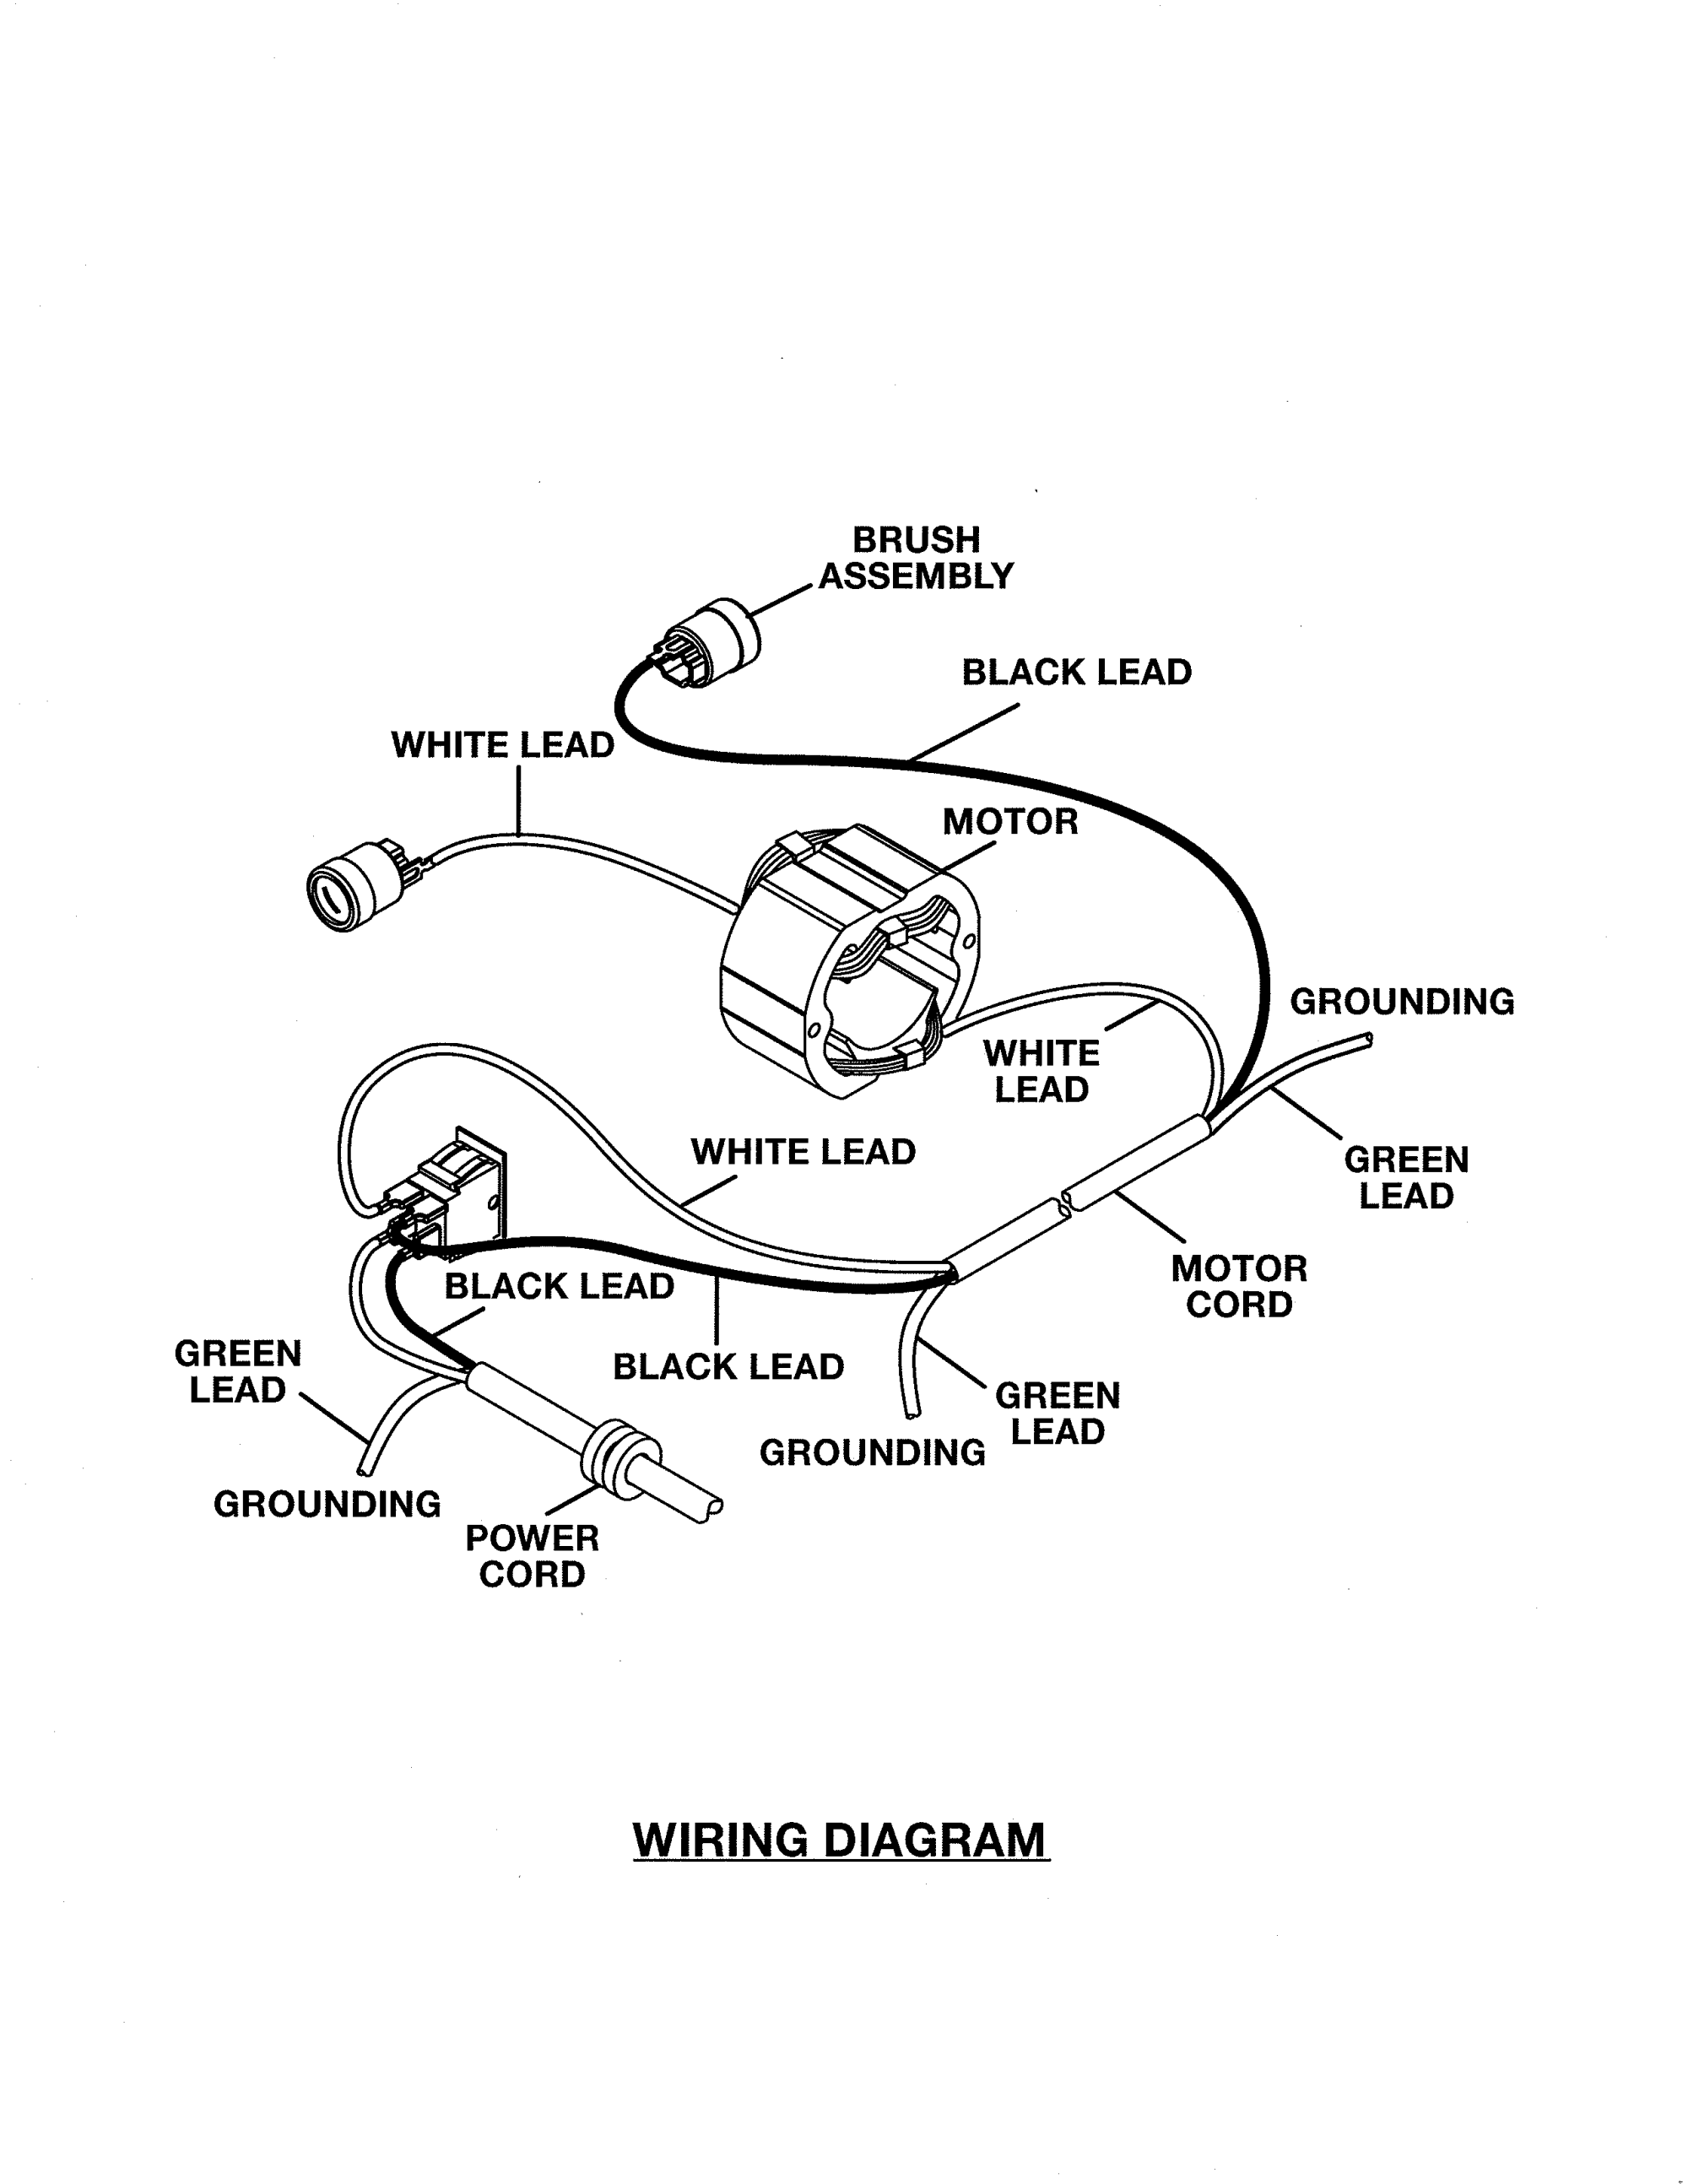 hight resolution of craftsman table saw wiring diagram wiring schematic craftsman 137 218250 table saw wiring diagram for craftsman table saw 137 248830